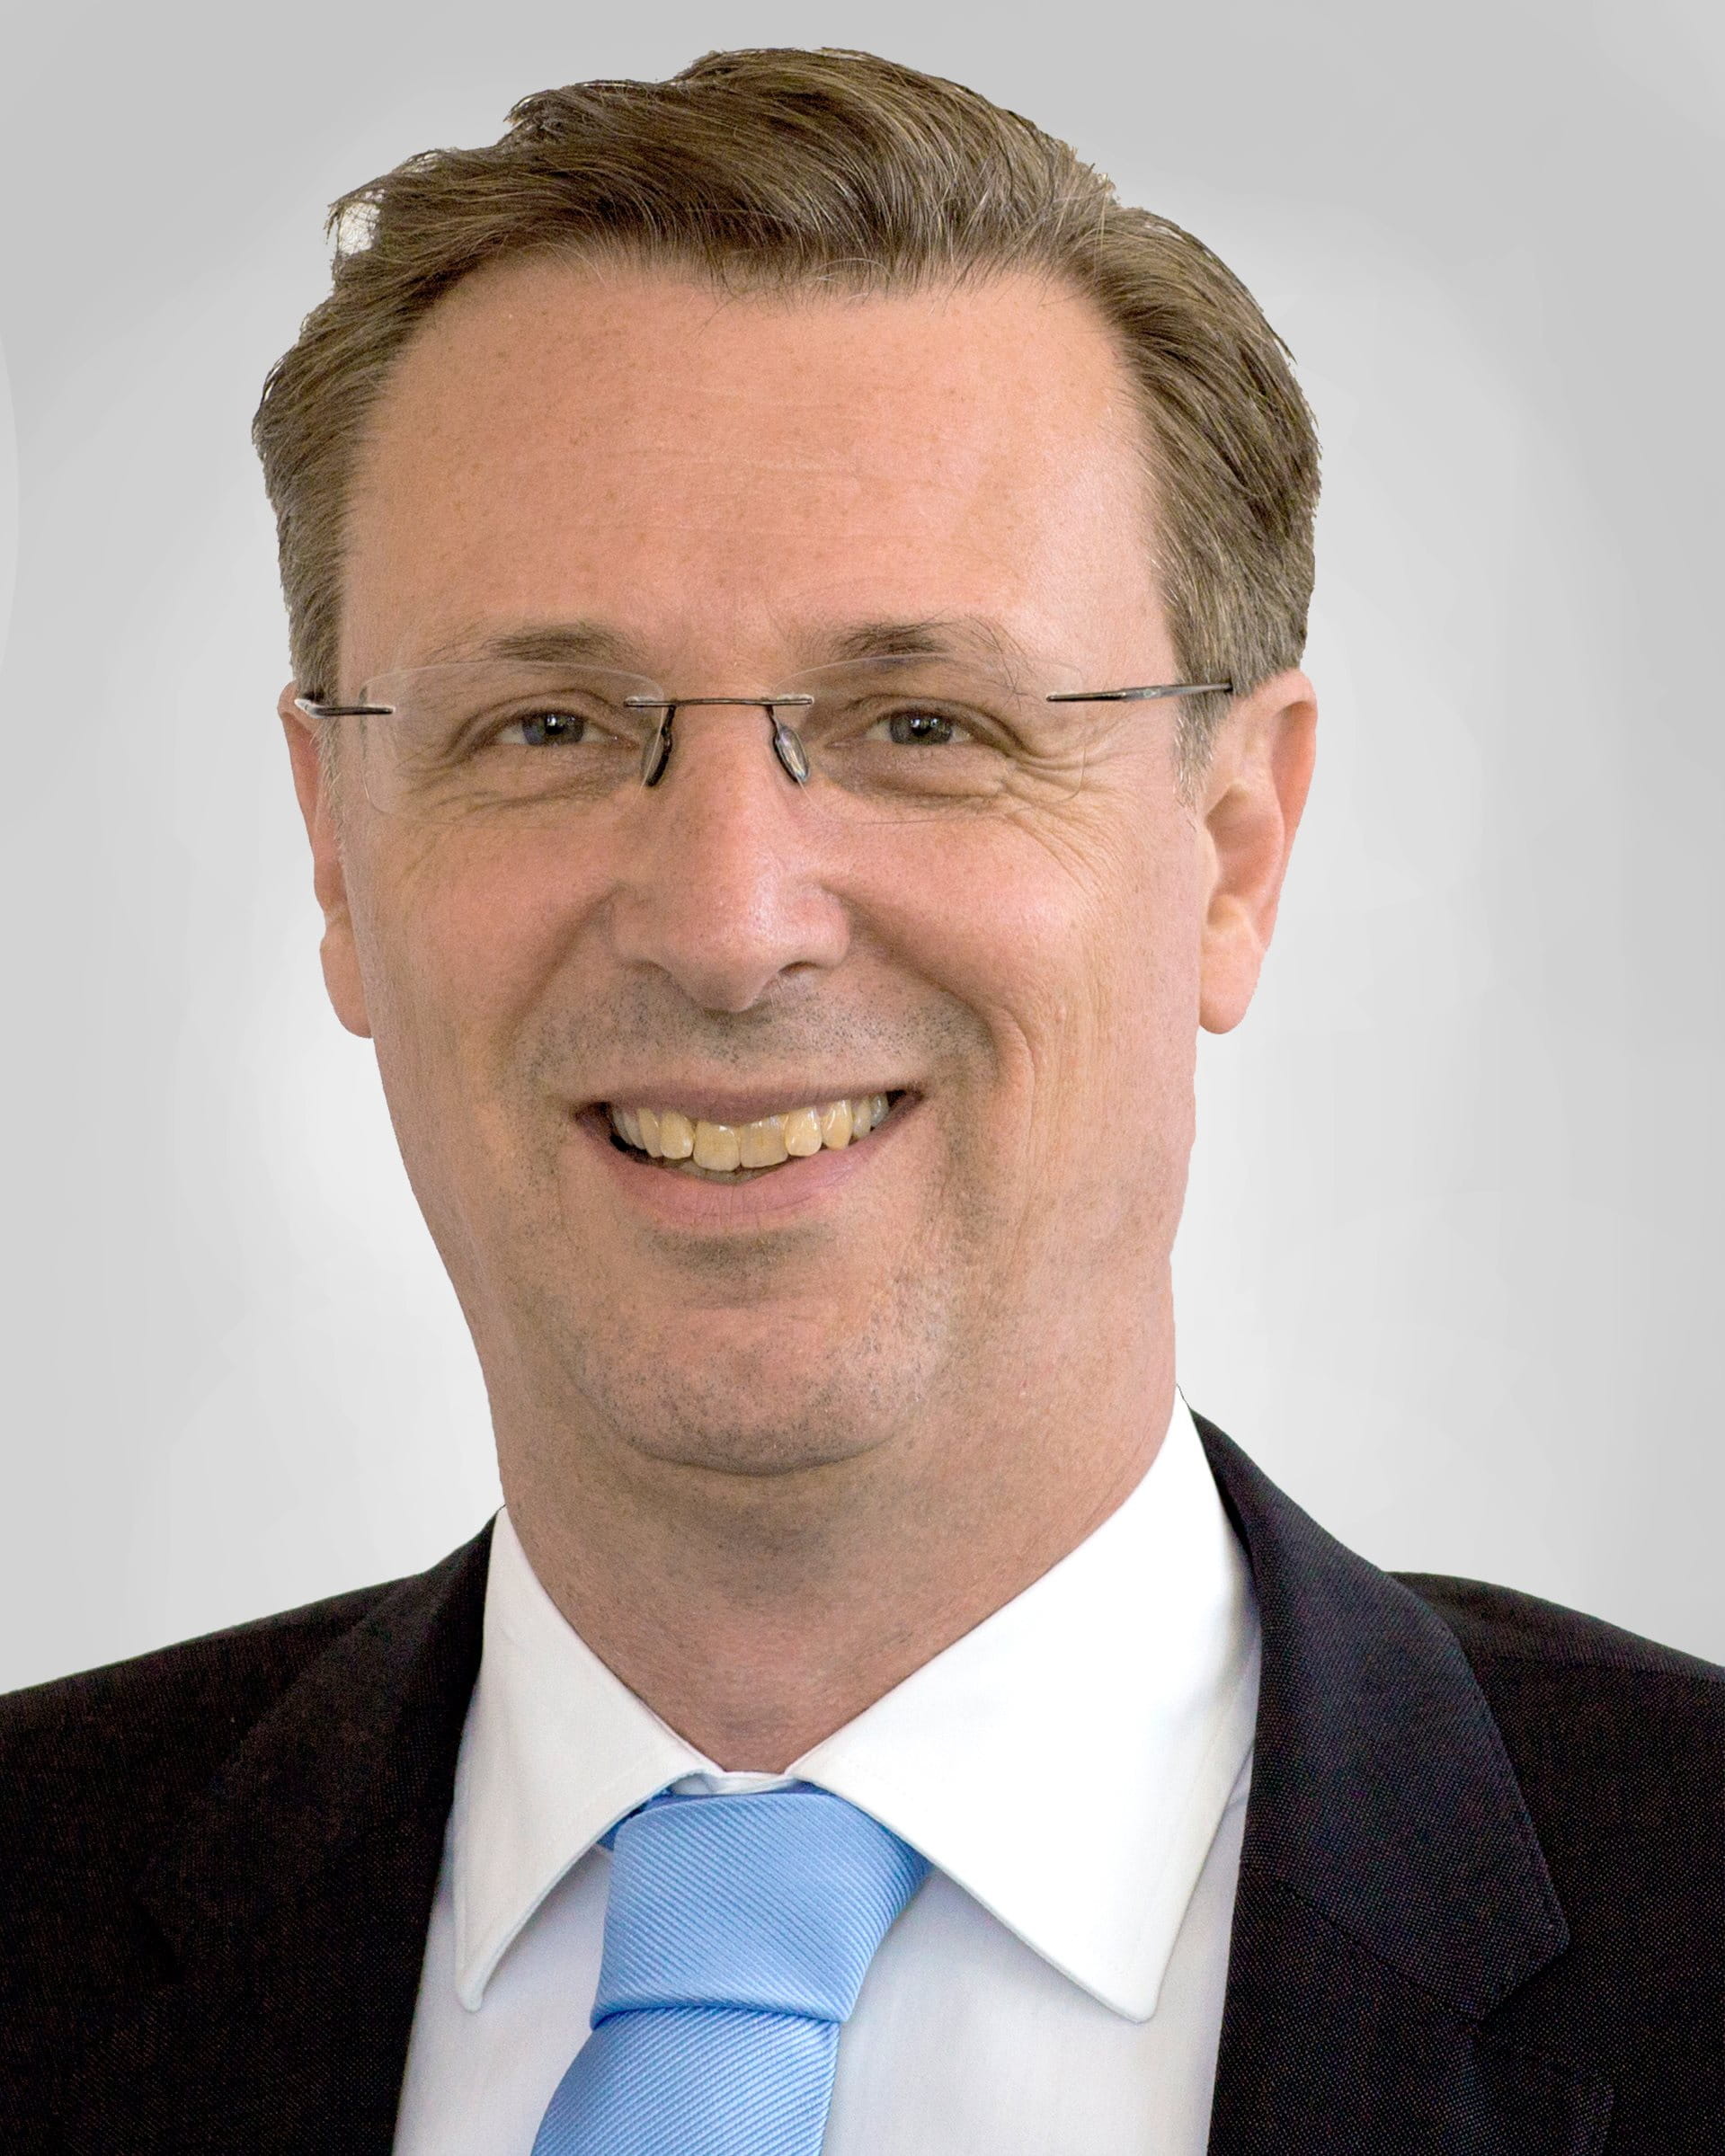 Jörg Bertogg, Head Commercial Insurance